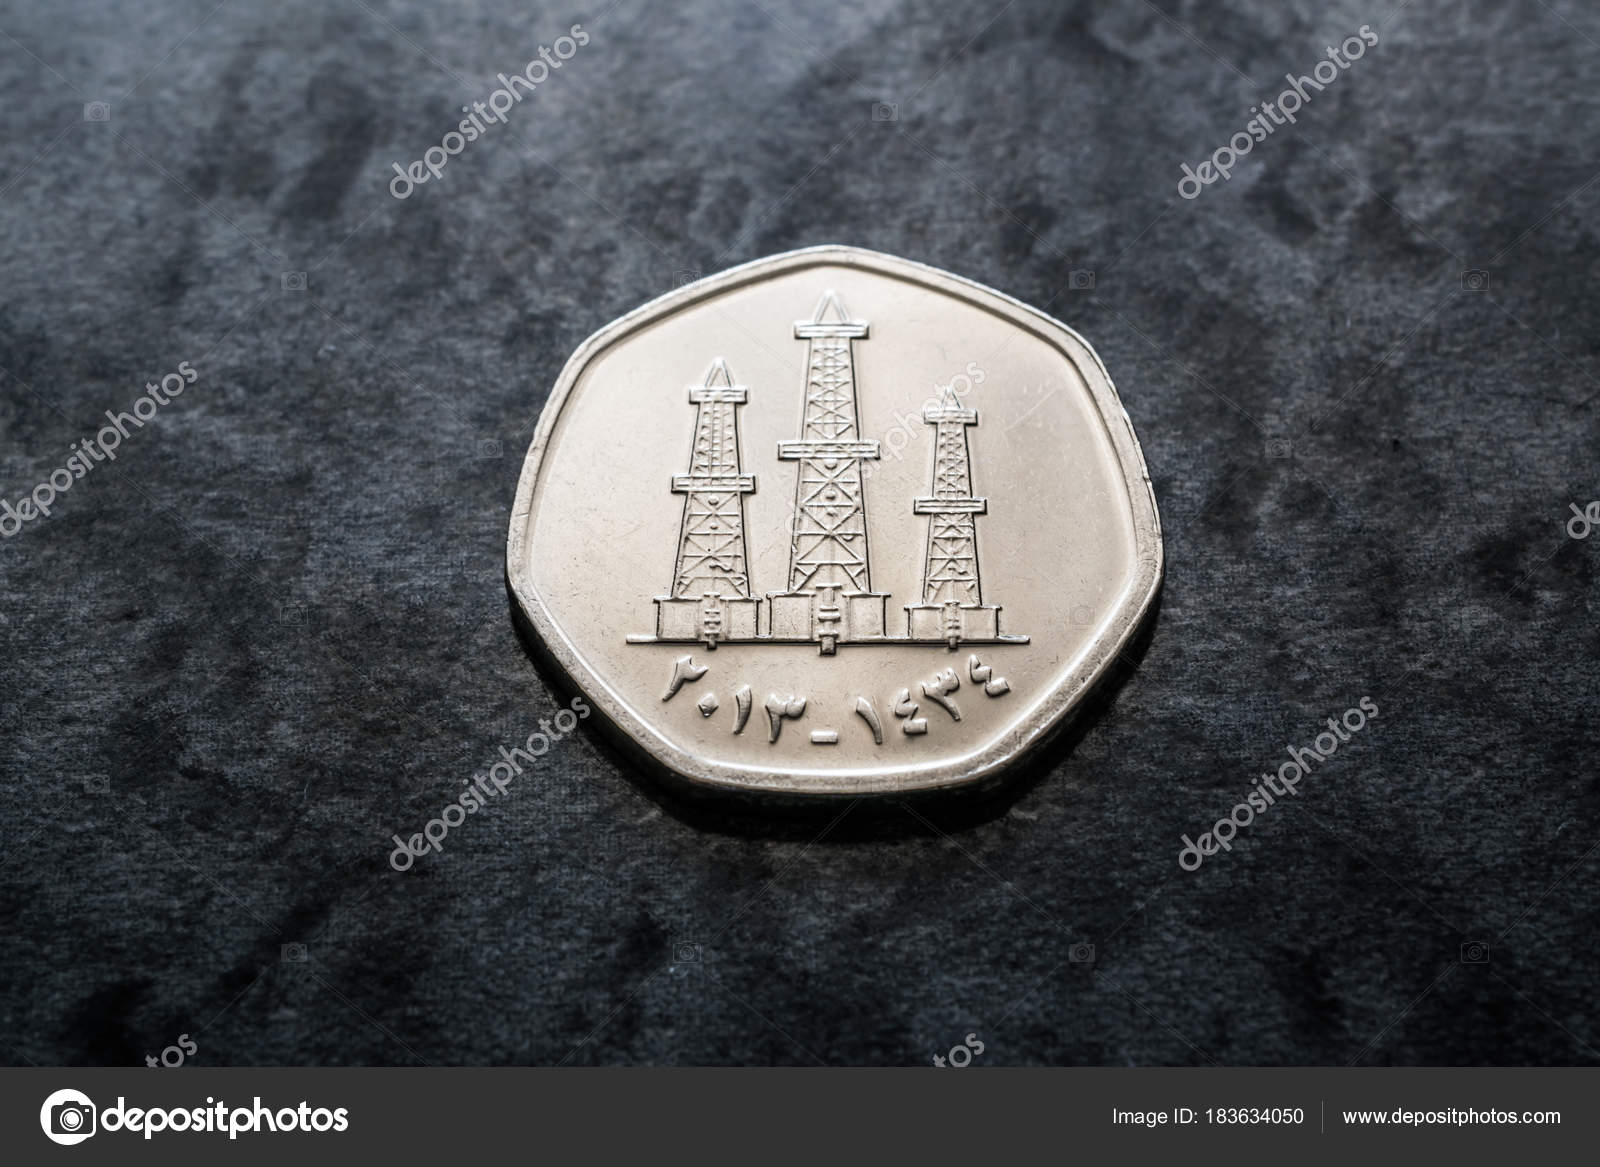 Uae coins currency